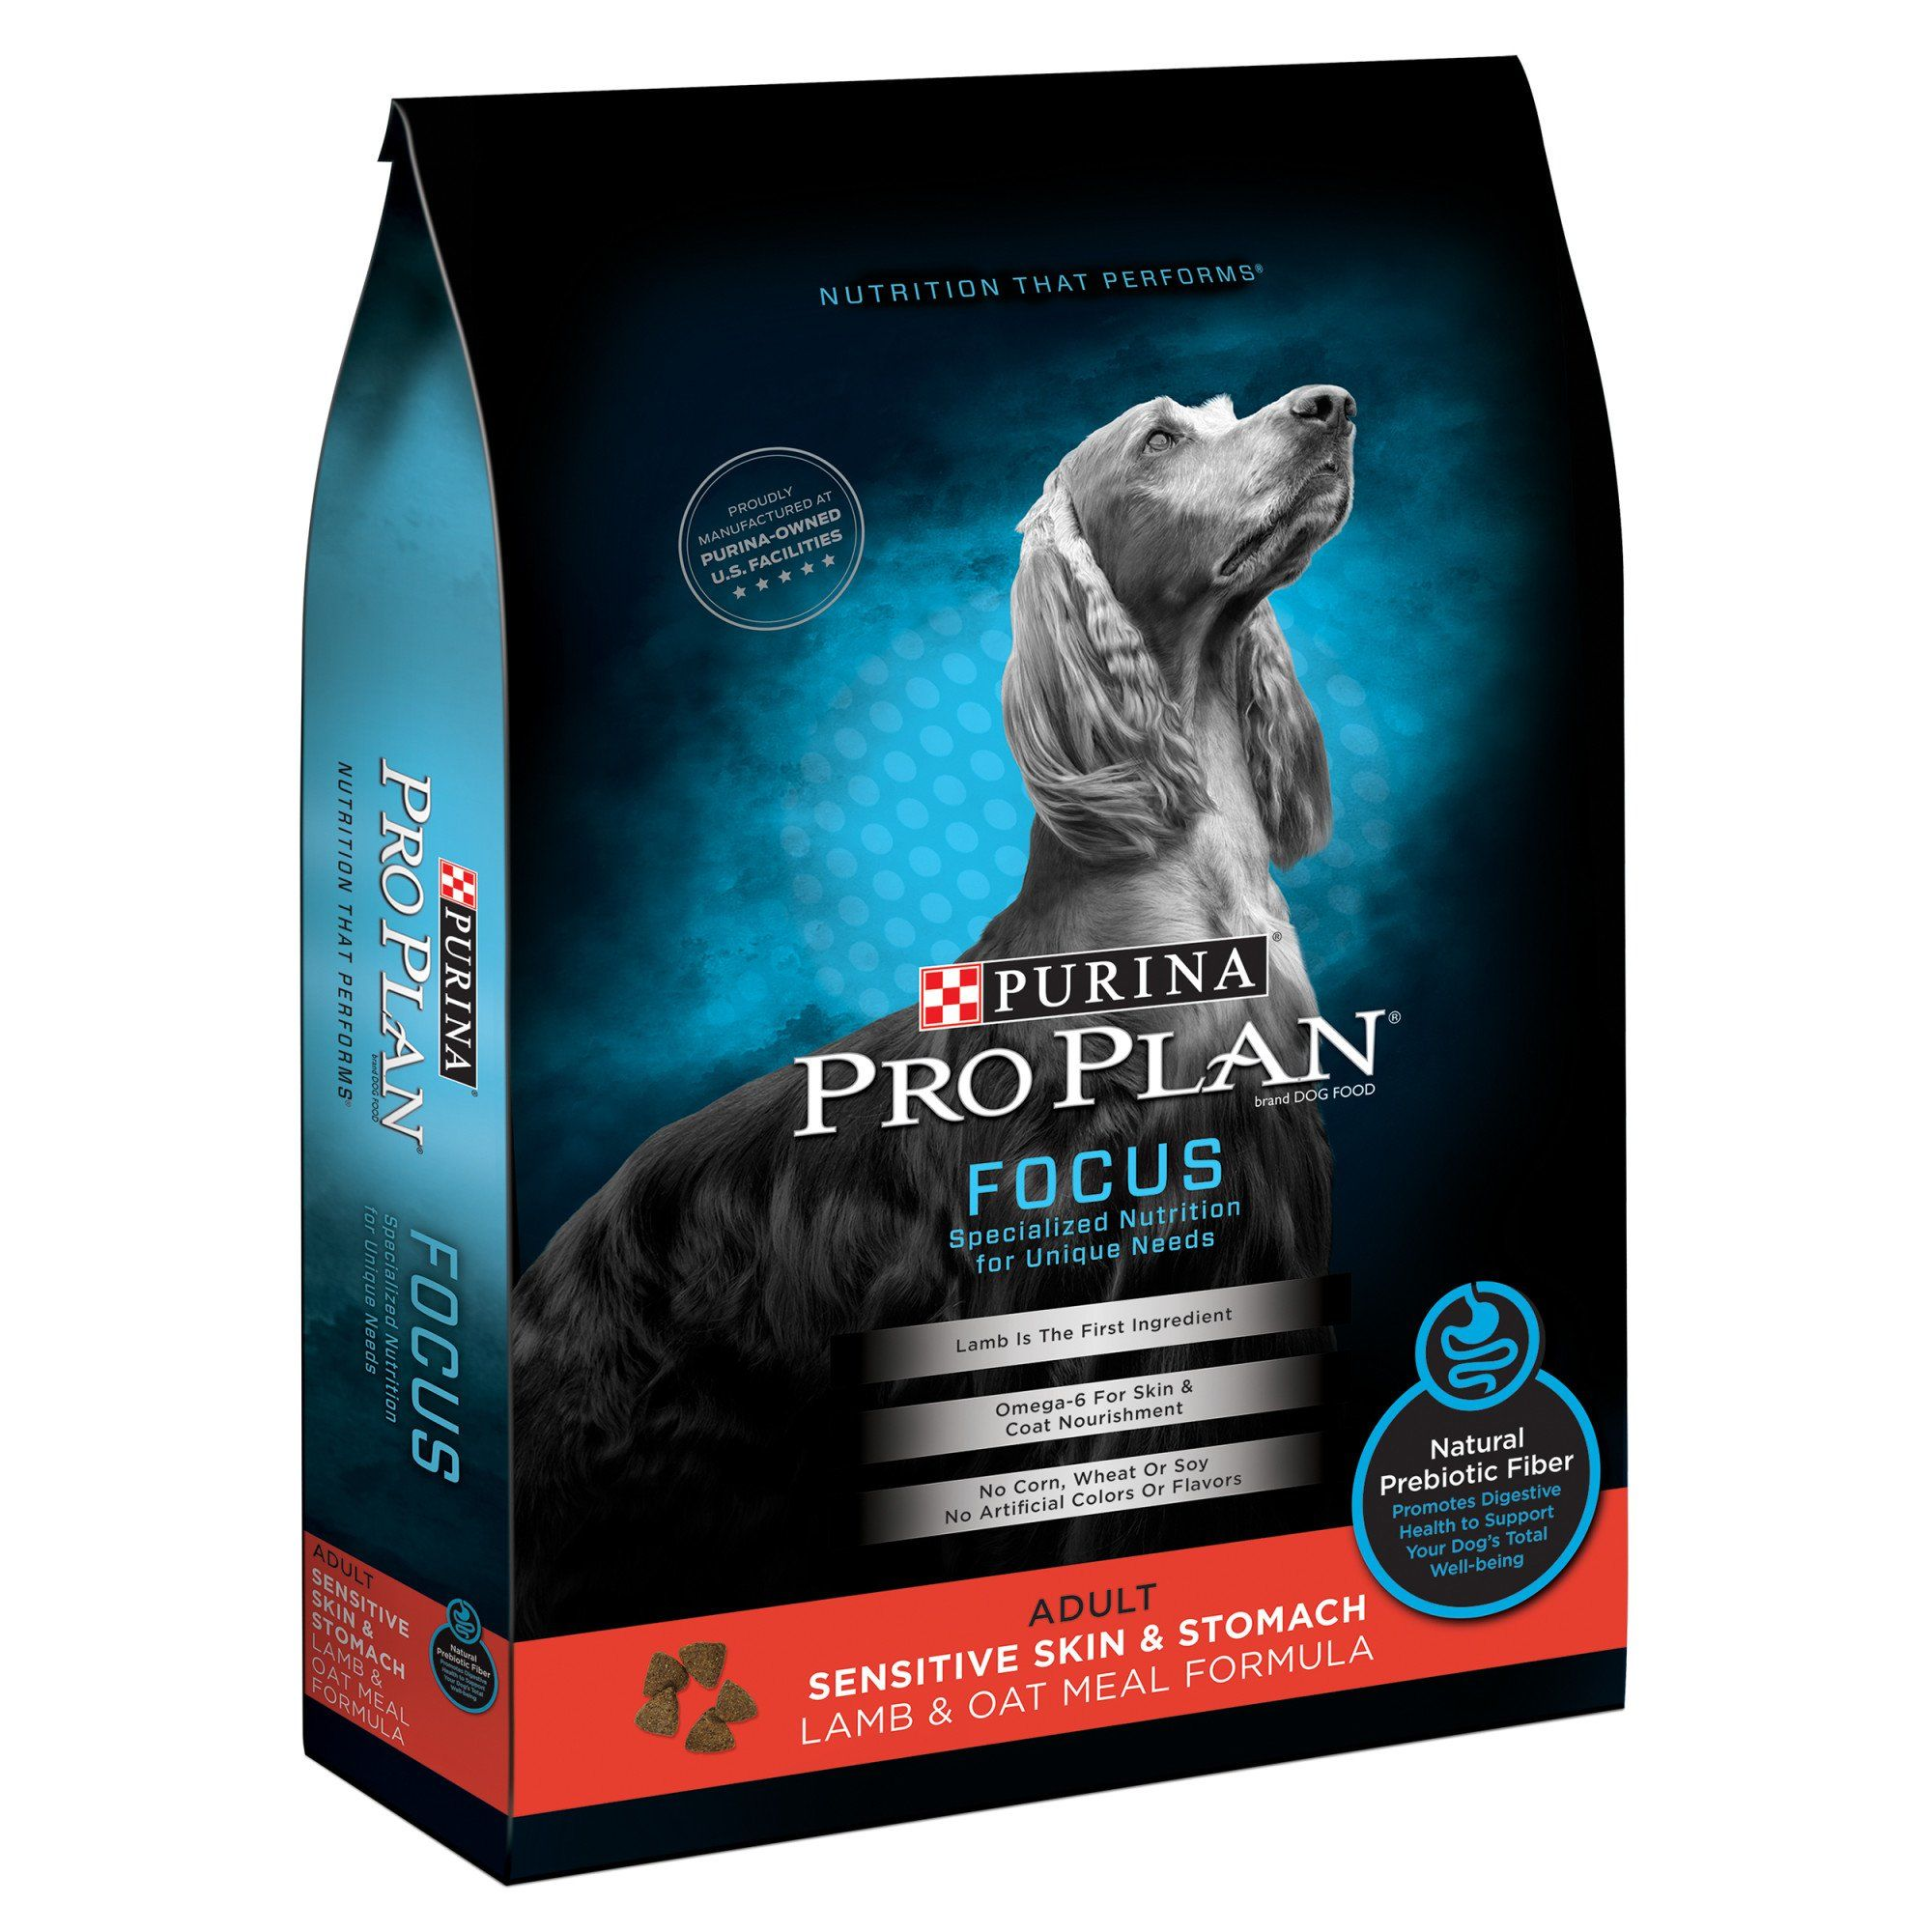 Purina Pro Plan Focus Sensitive Skin Stomach Lamb Oat Meal